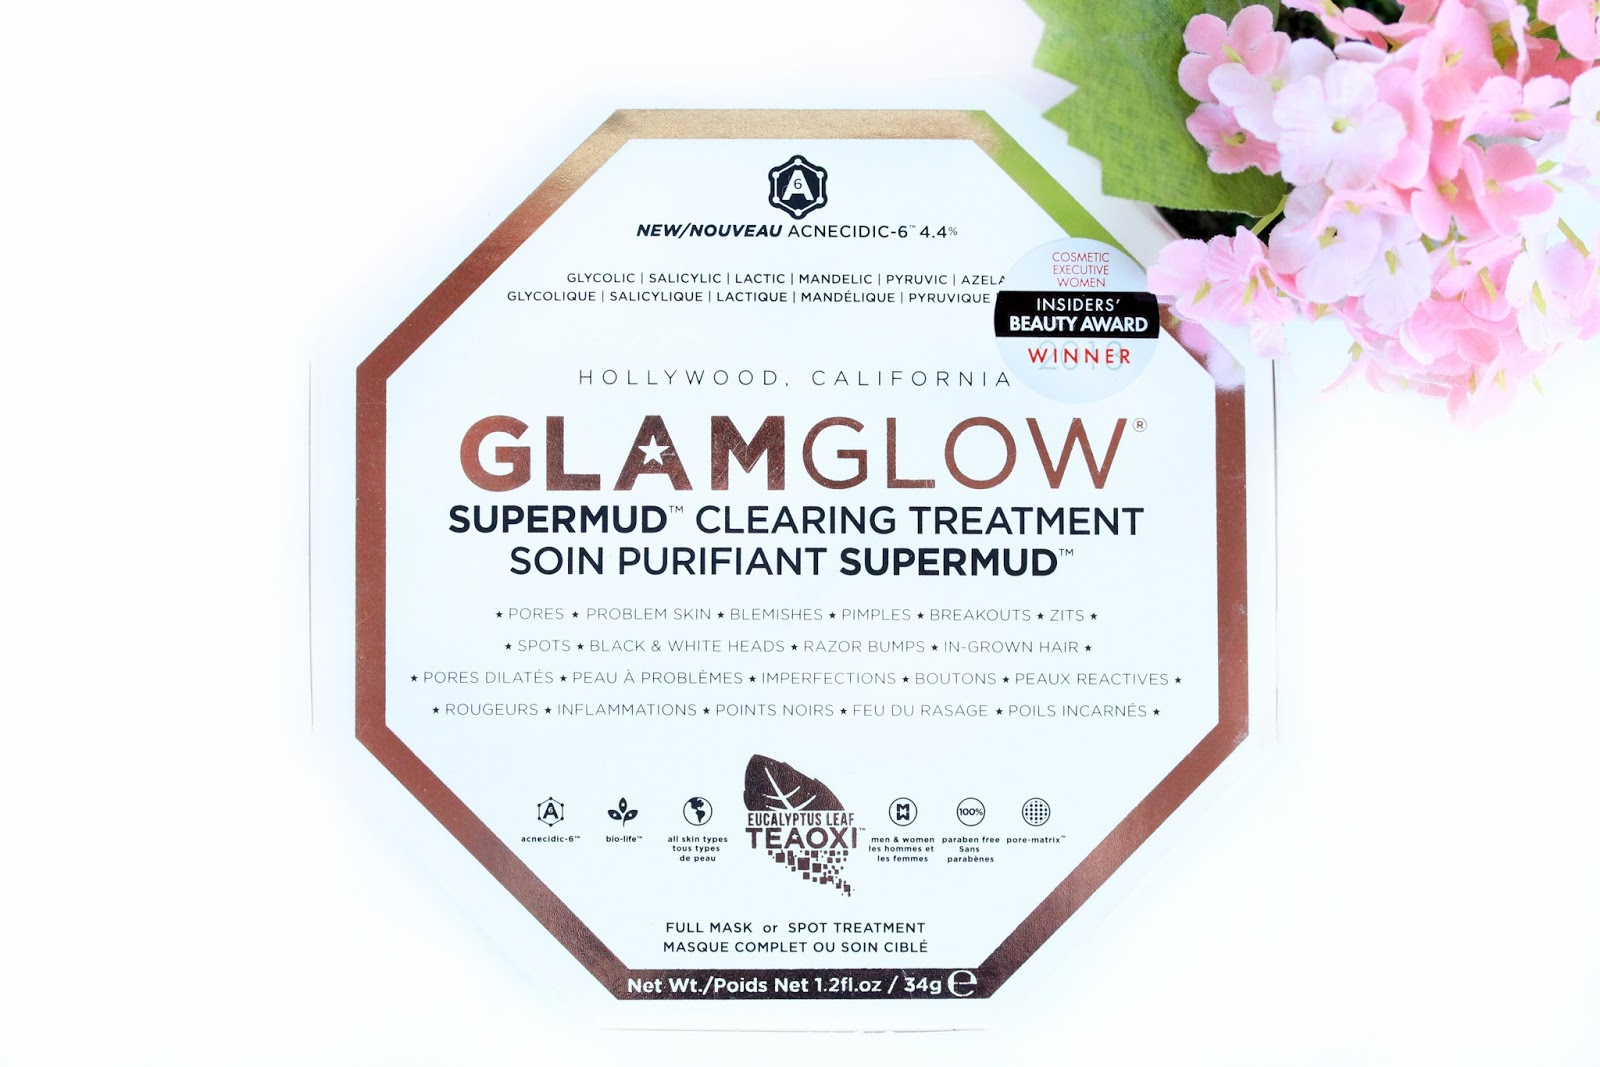 GlamGlow Supermud Clearing Mask